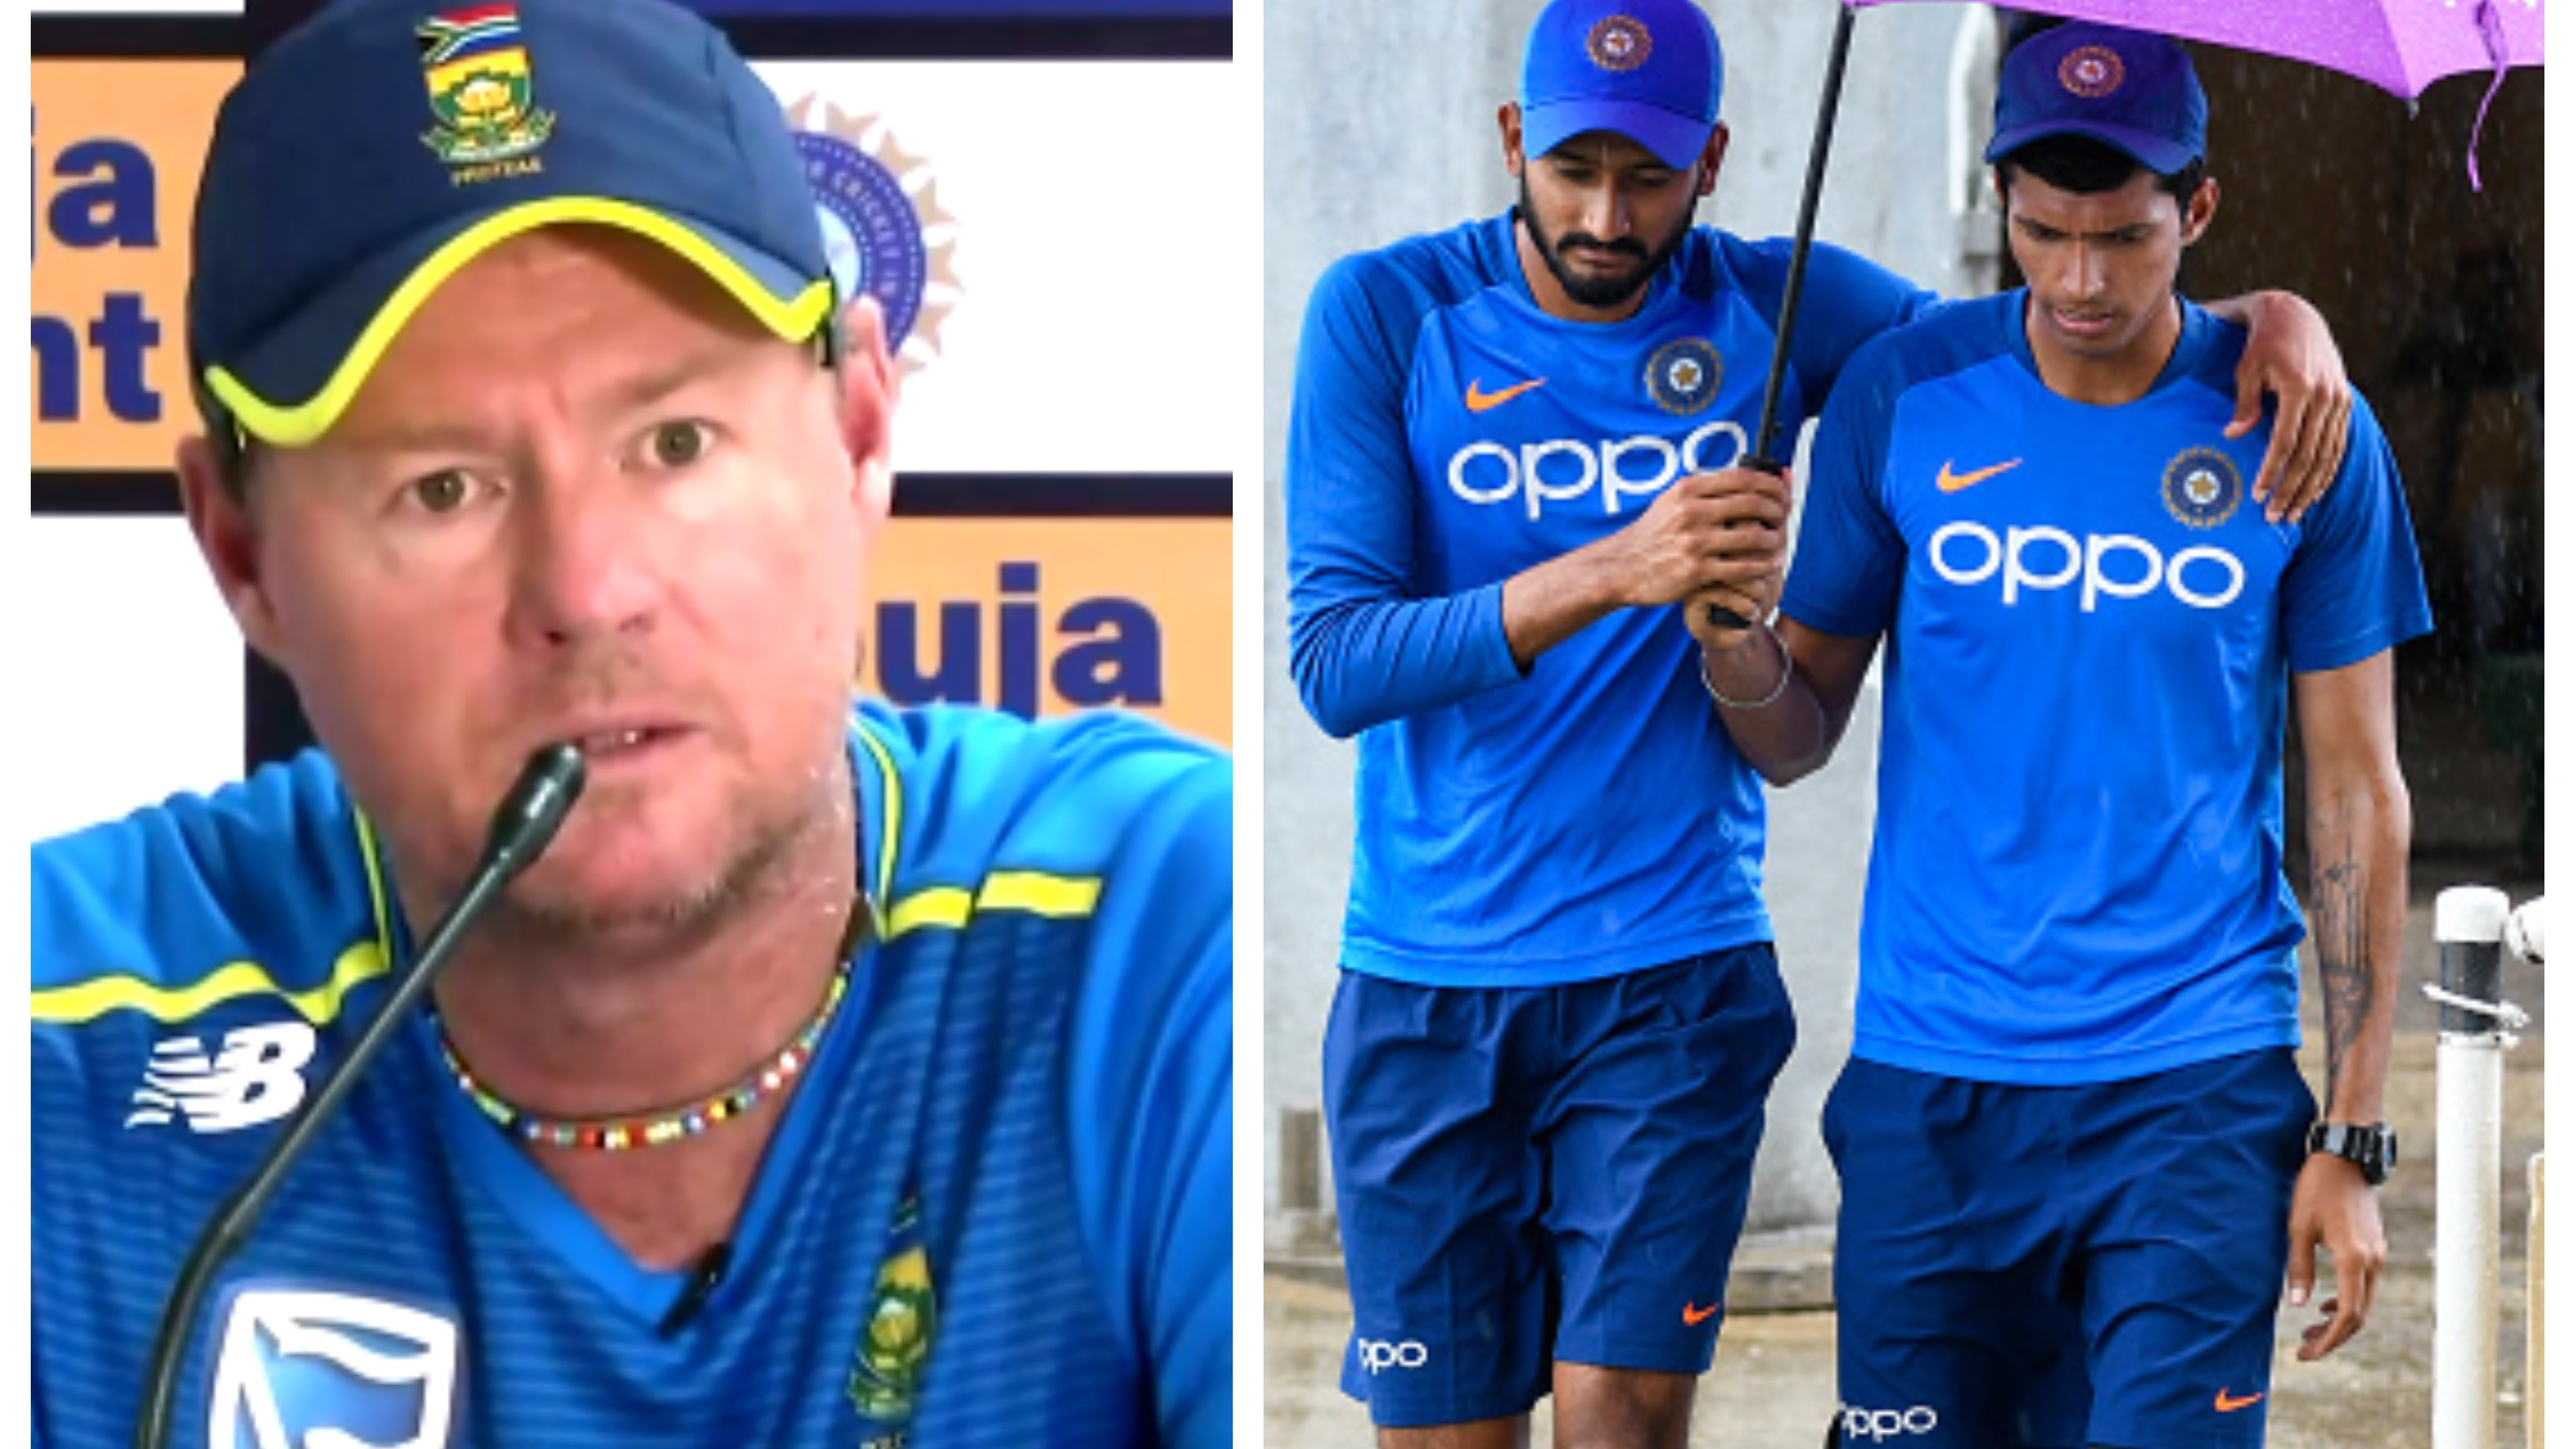 IND v SA 2019: South Africa will look to take advantage of India's inexperienced pacers, says Klusener